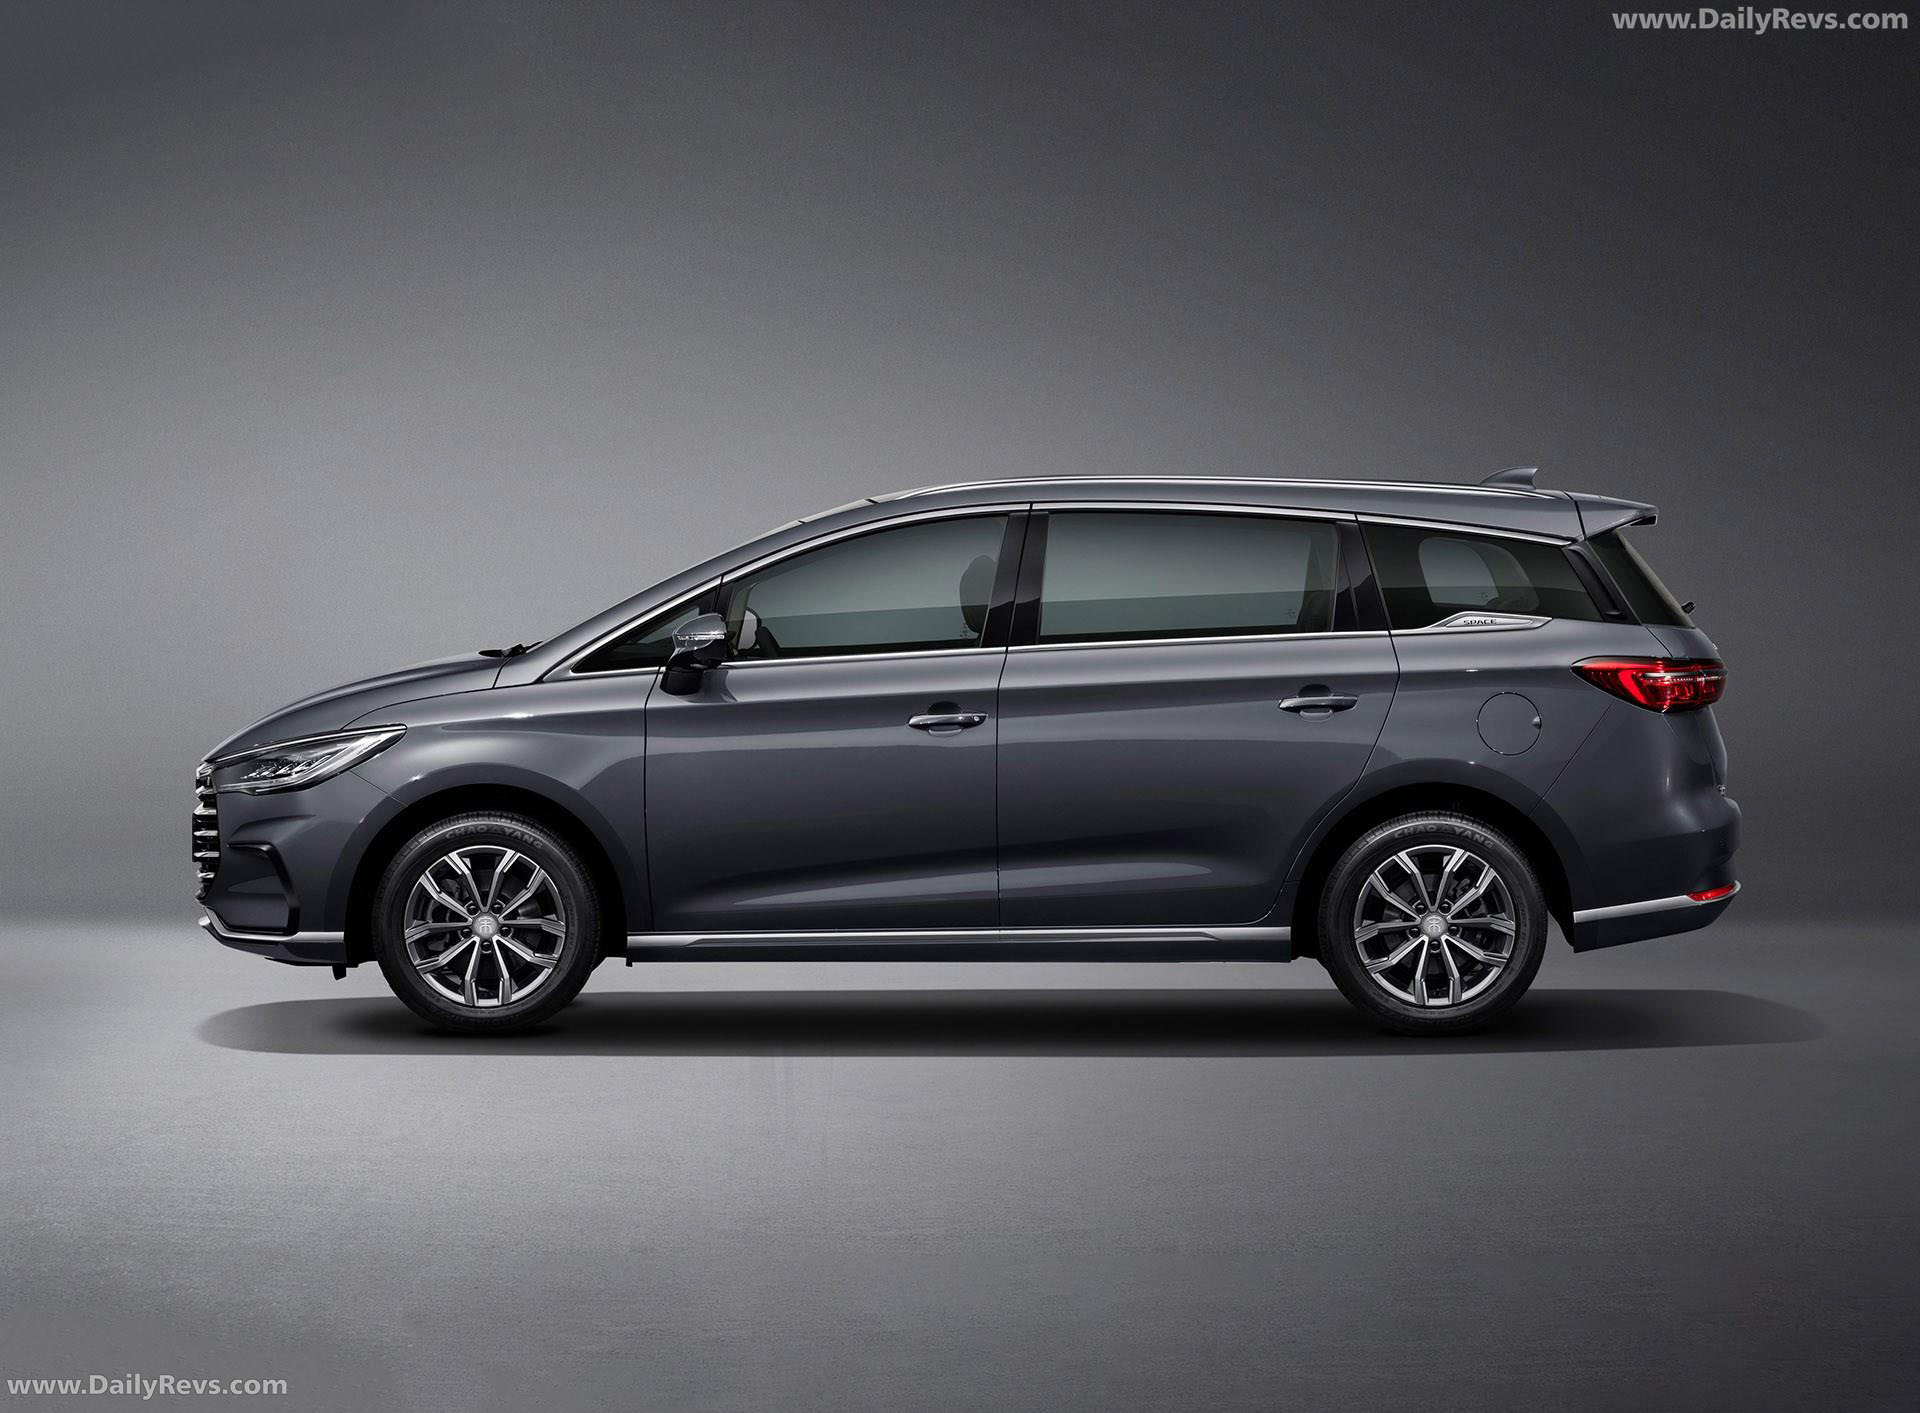 2021 BYD Song Max full